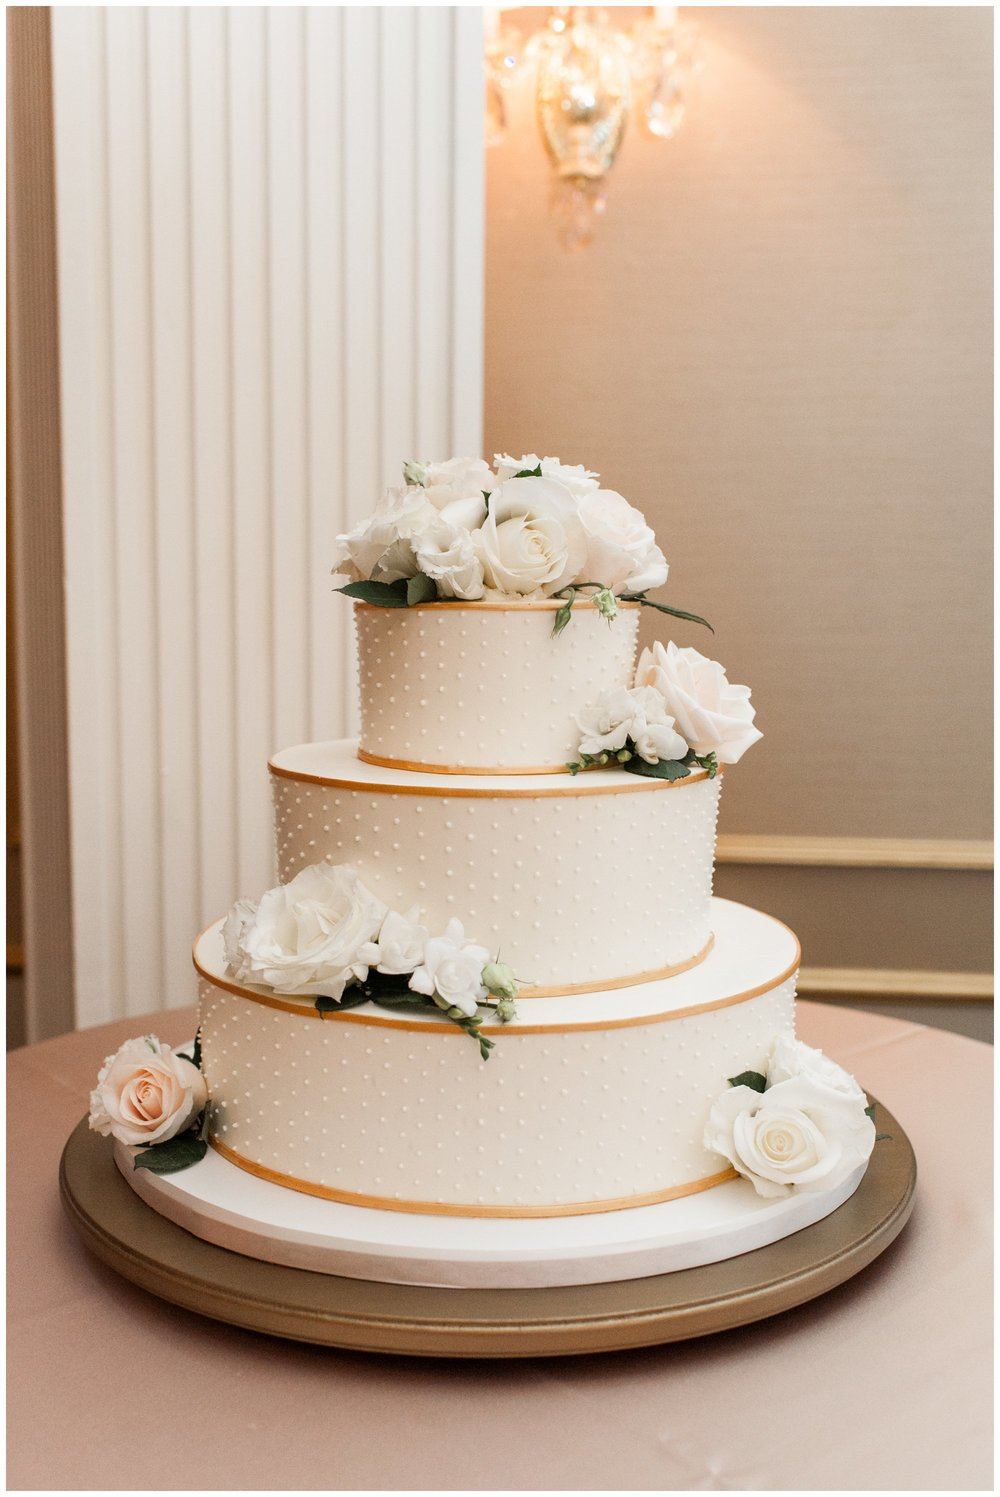 Dessert Works Textured wedding cake for Lenox Hotel Wedding in Boston